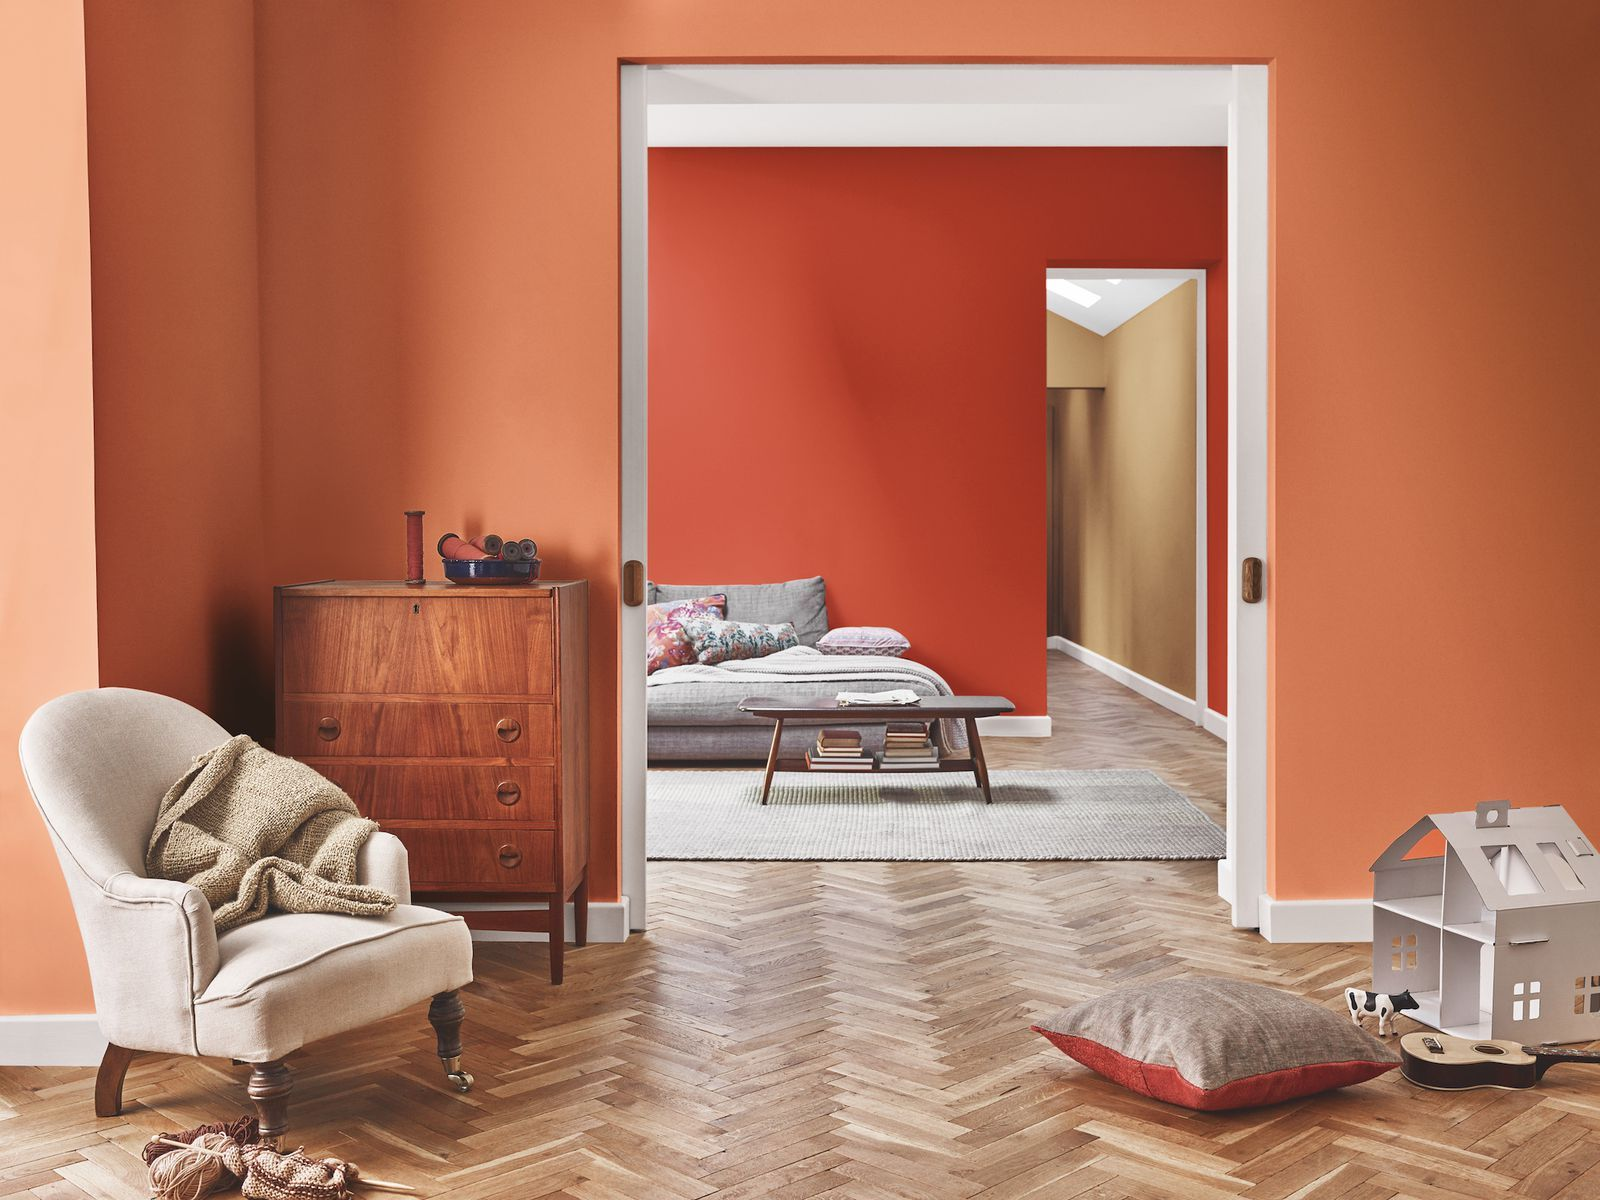 30 Warm And Inviting Colour Combinations For A Cosy Home Best Bedroom Colors Colour Combinations Interior Wall Color Combination